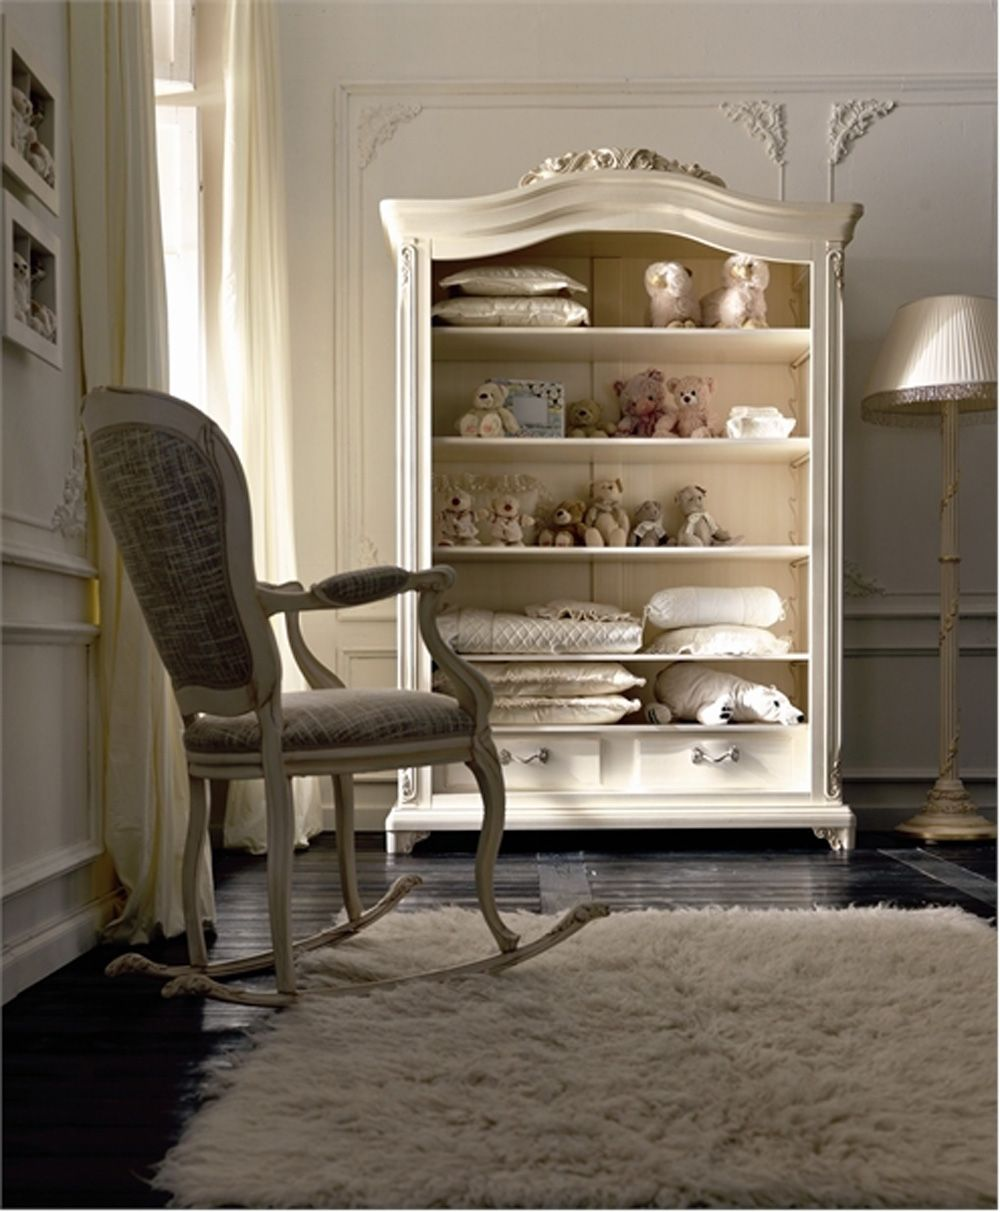 Nursery Storage In French Country Style Baby